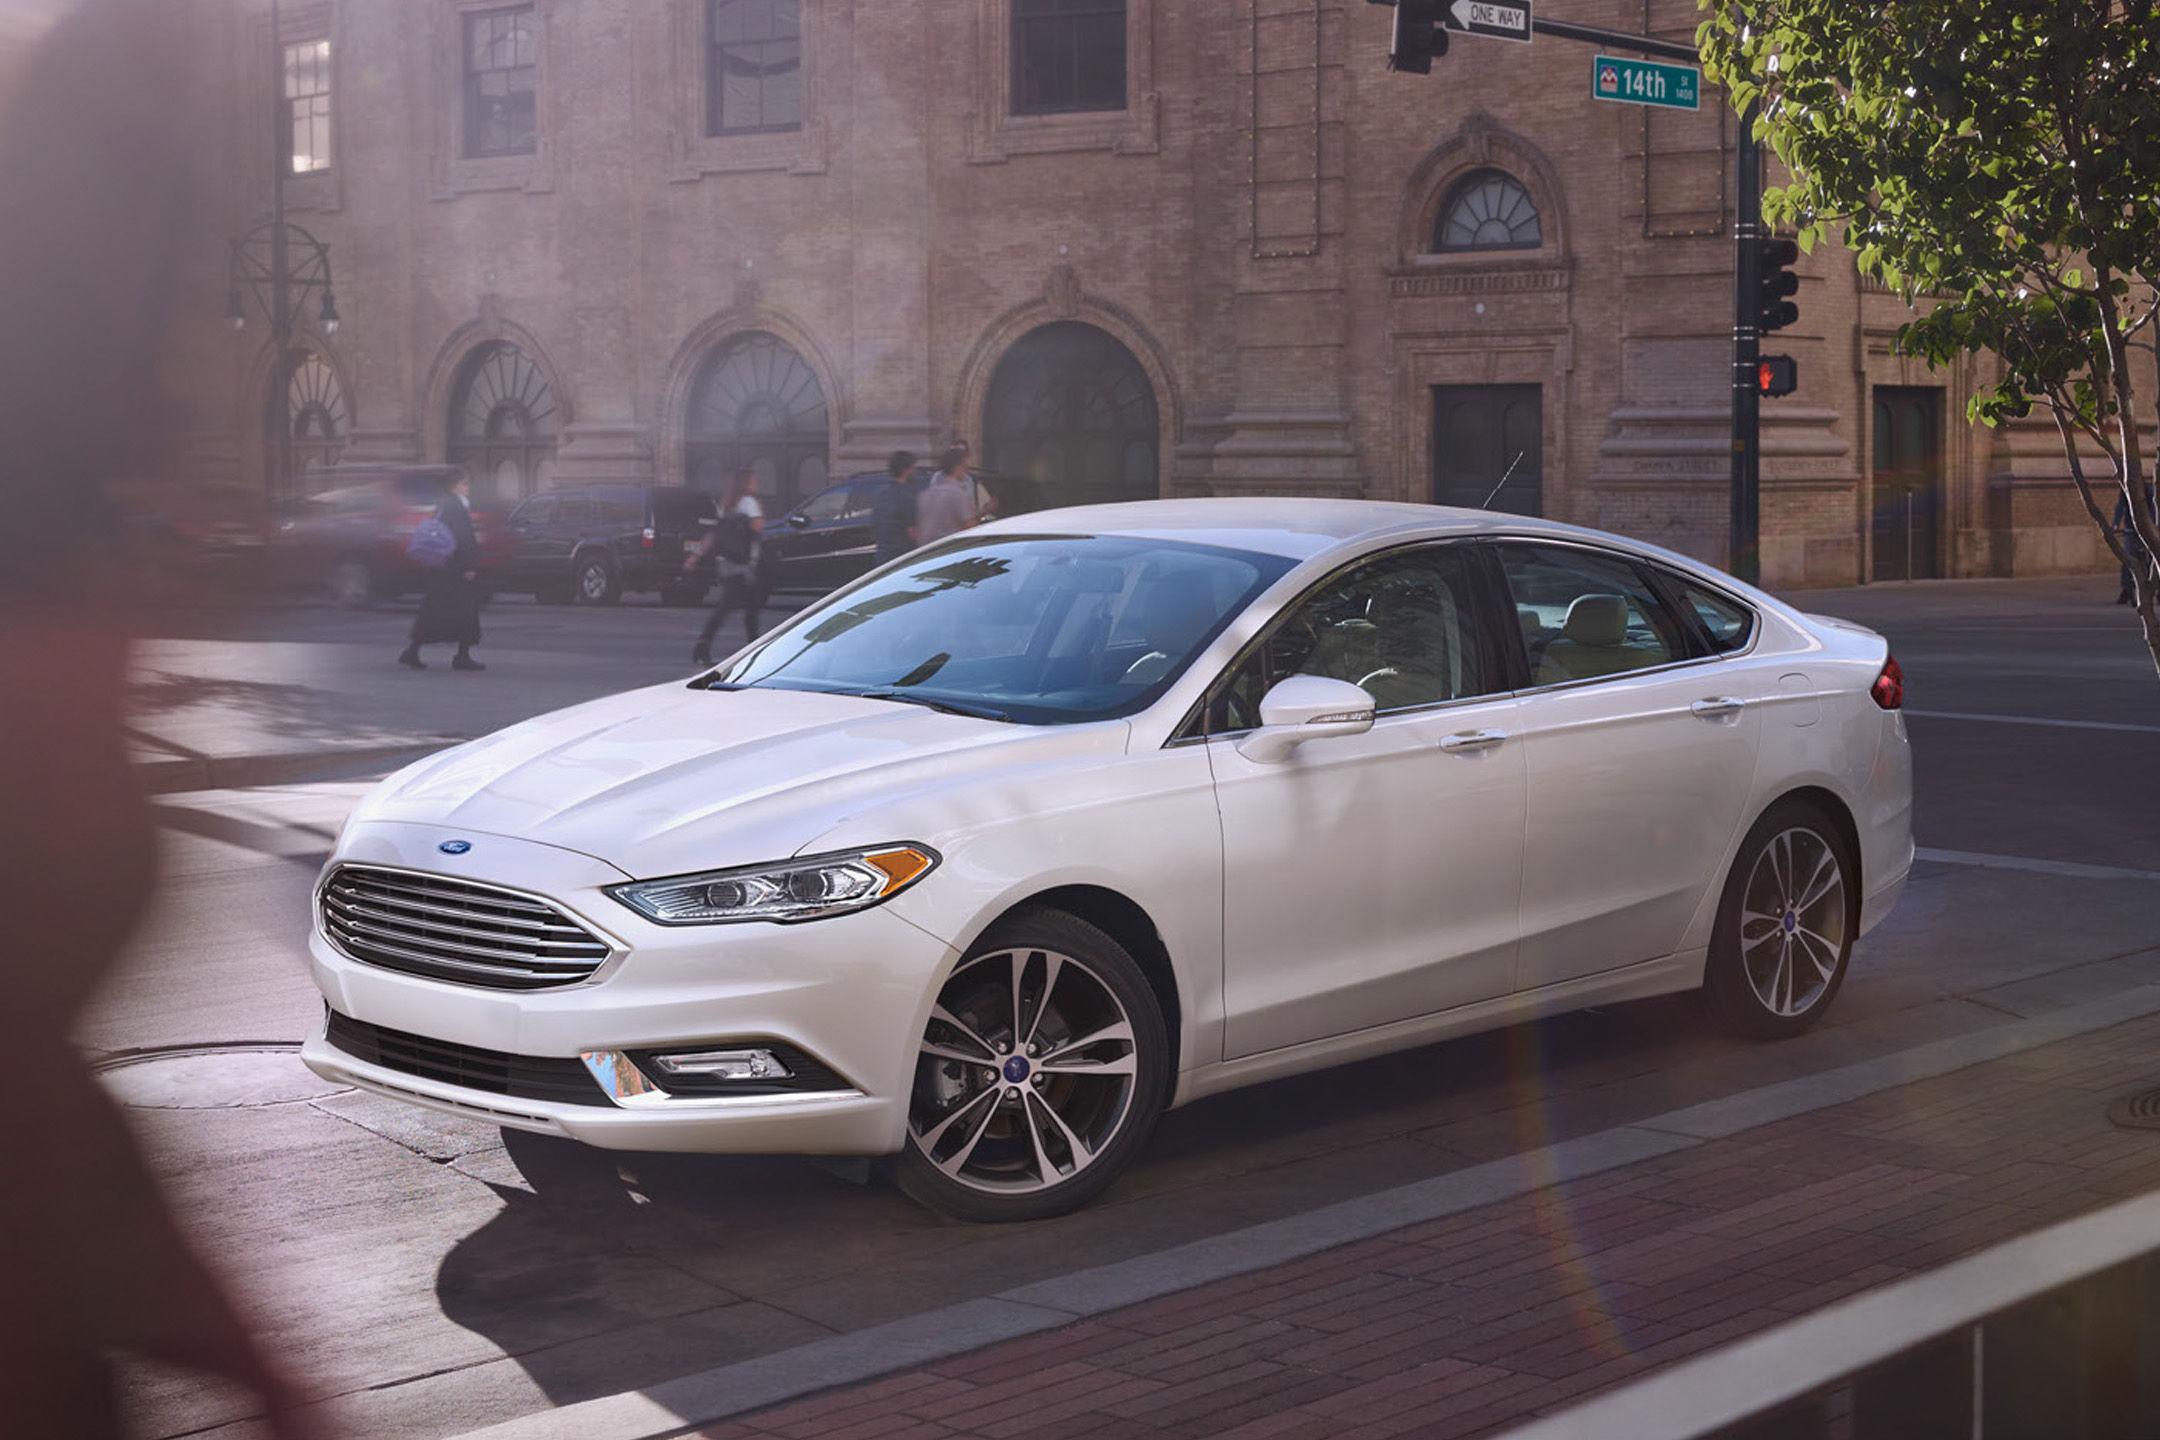 range electric safety adds mark platinum fusion ford boosts features hybrid story phelan money cars